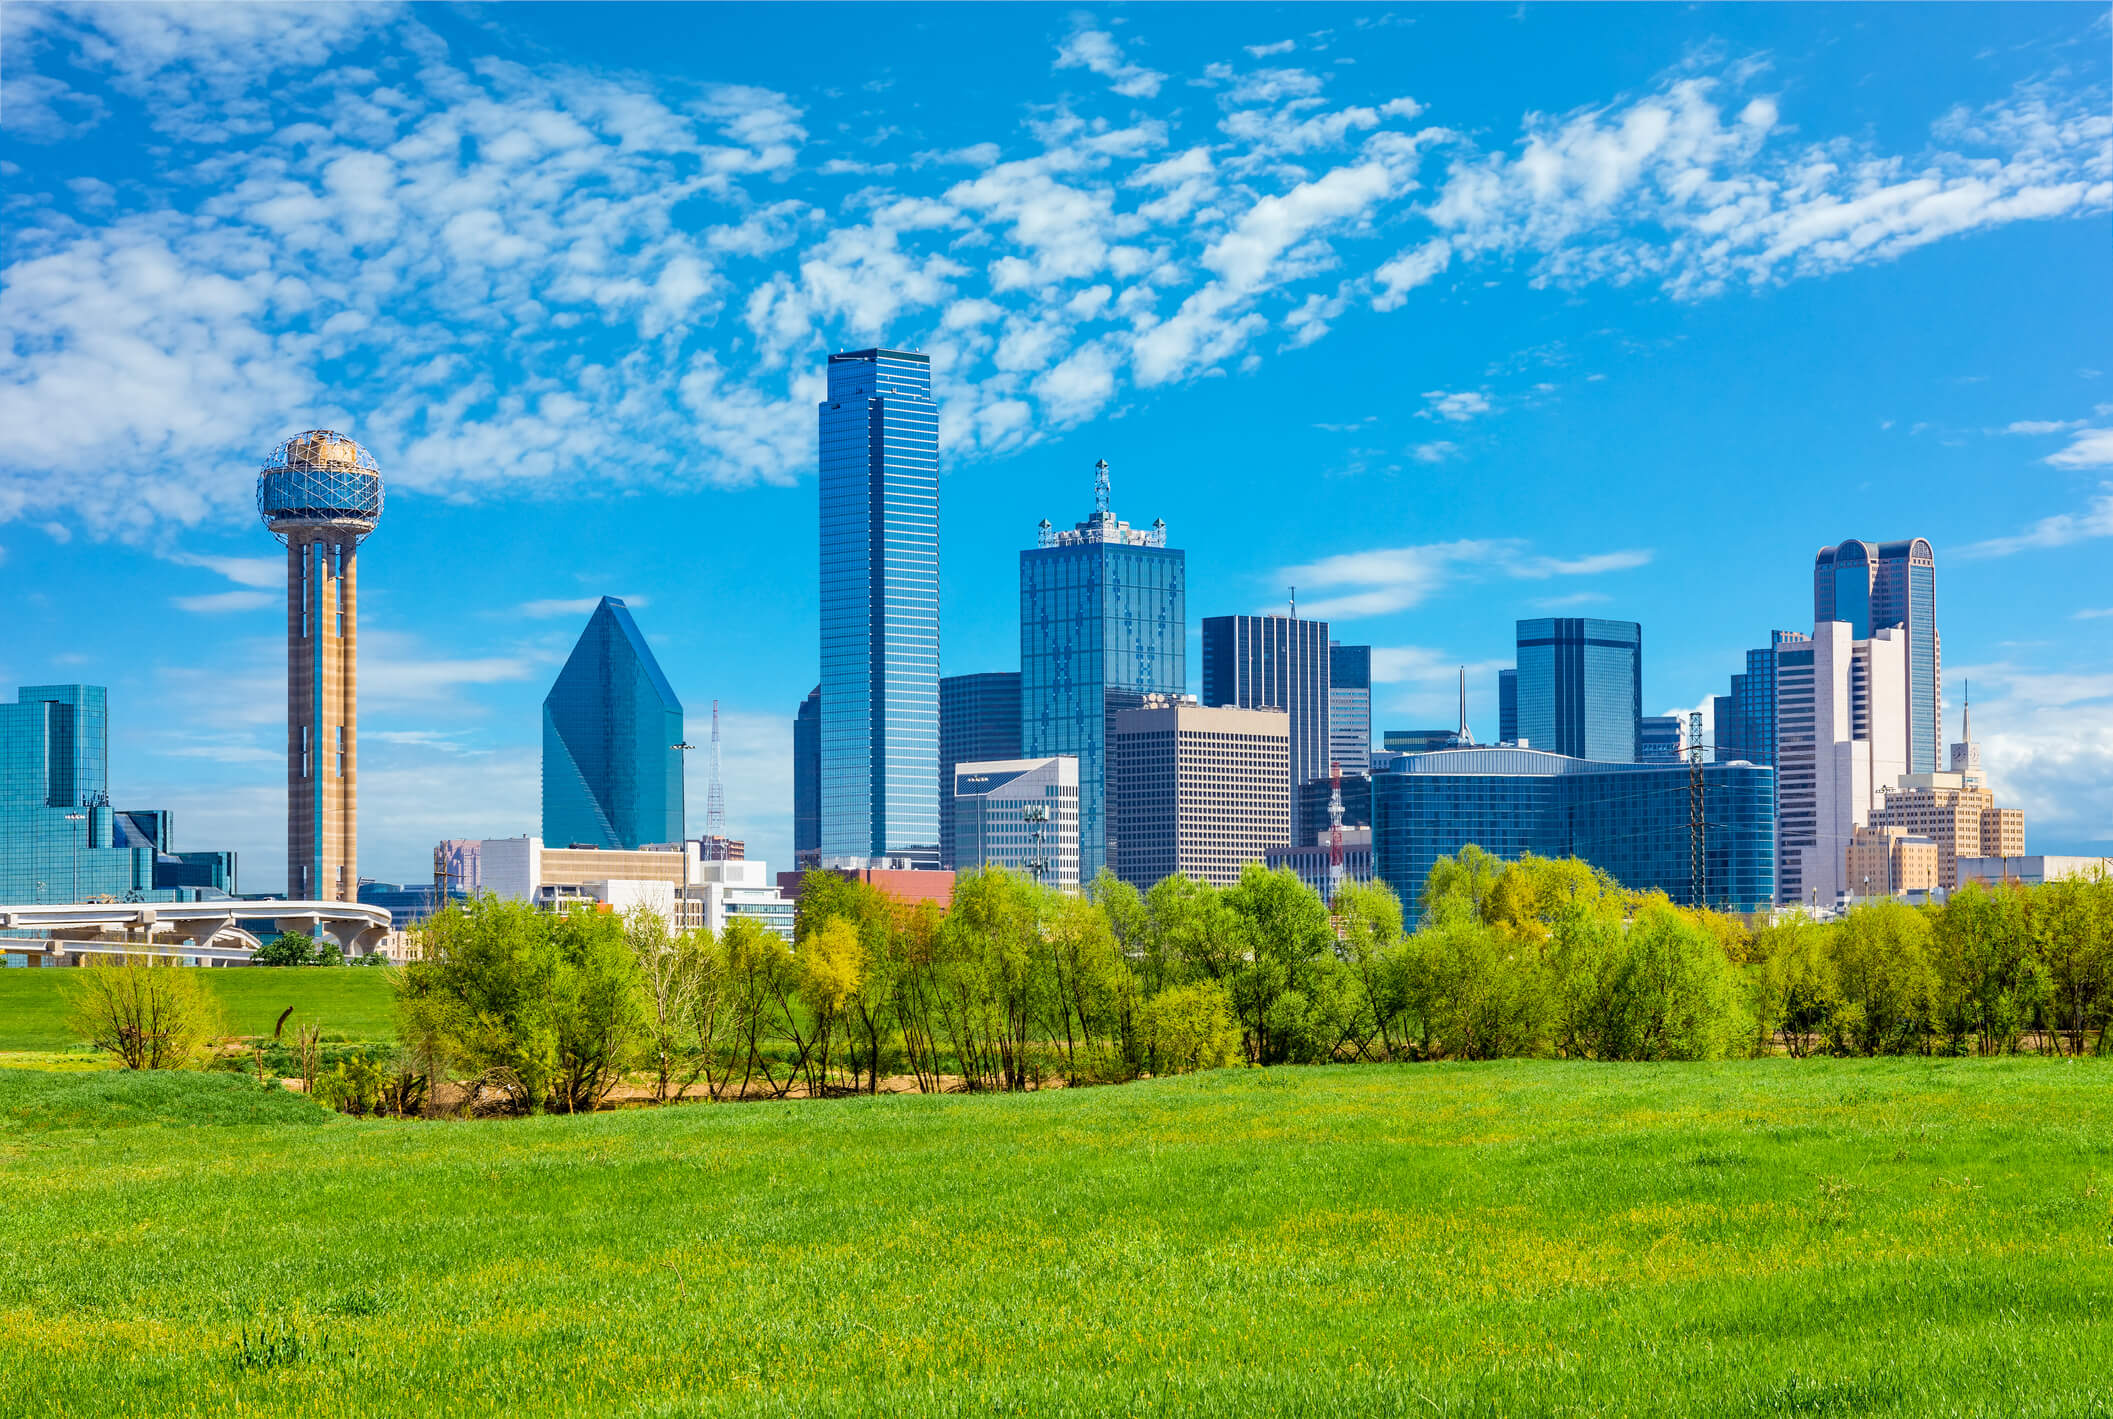 This is a photo of the downtown dallas skyline with trees and skyrises in the back.